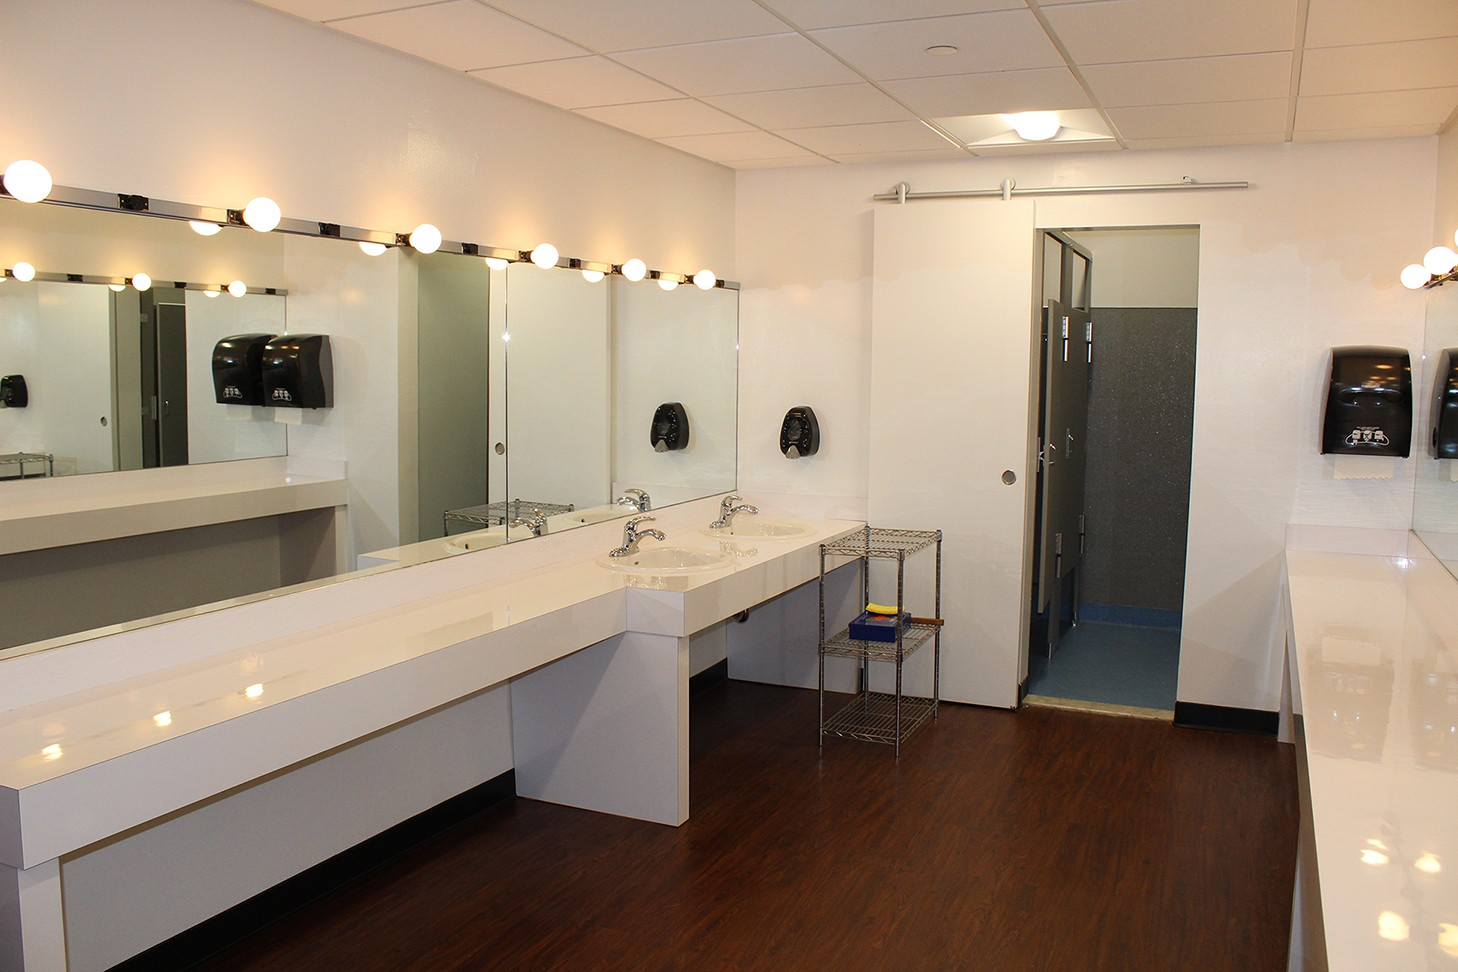 A renovation to the Miller Theatre dressing rooms included dropped ceilings with new tiles and LED light fixtures, an upgraded restroom, and new flooring.